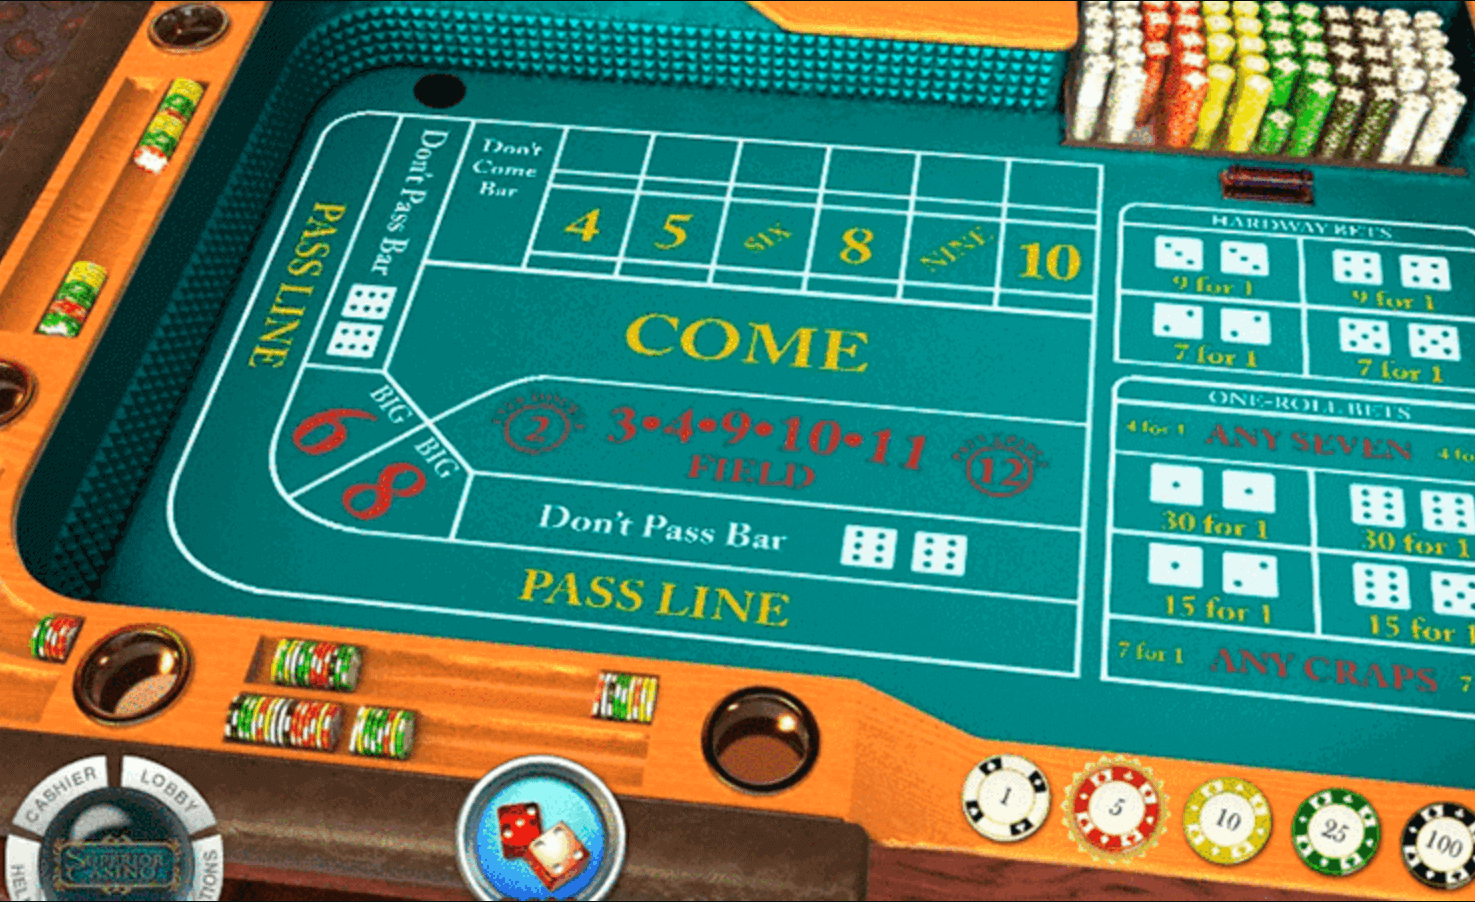 screenshot of a craps table showing betting interface